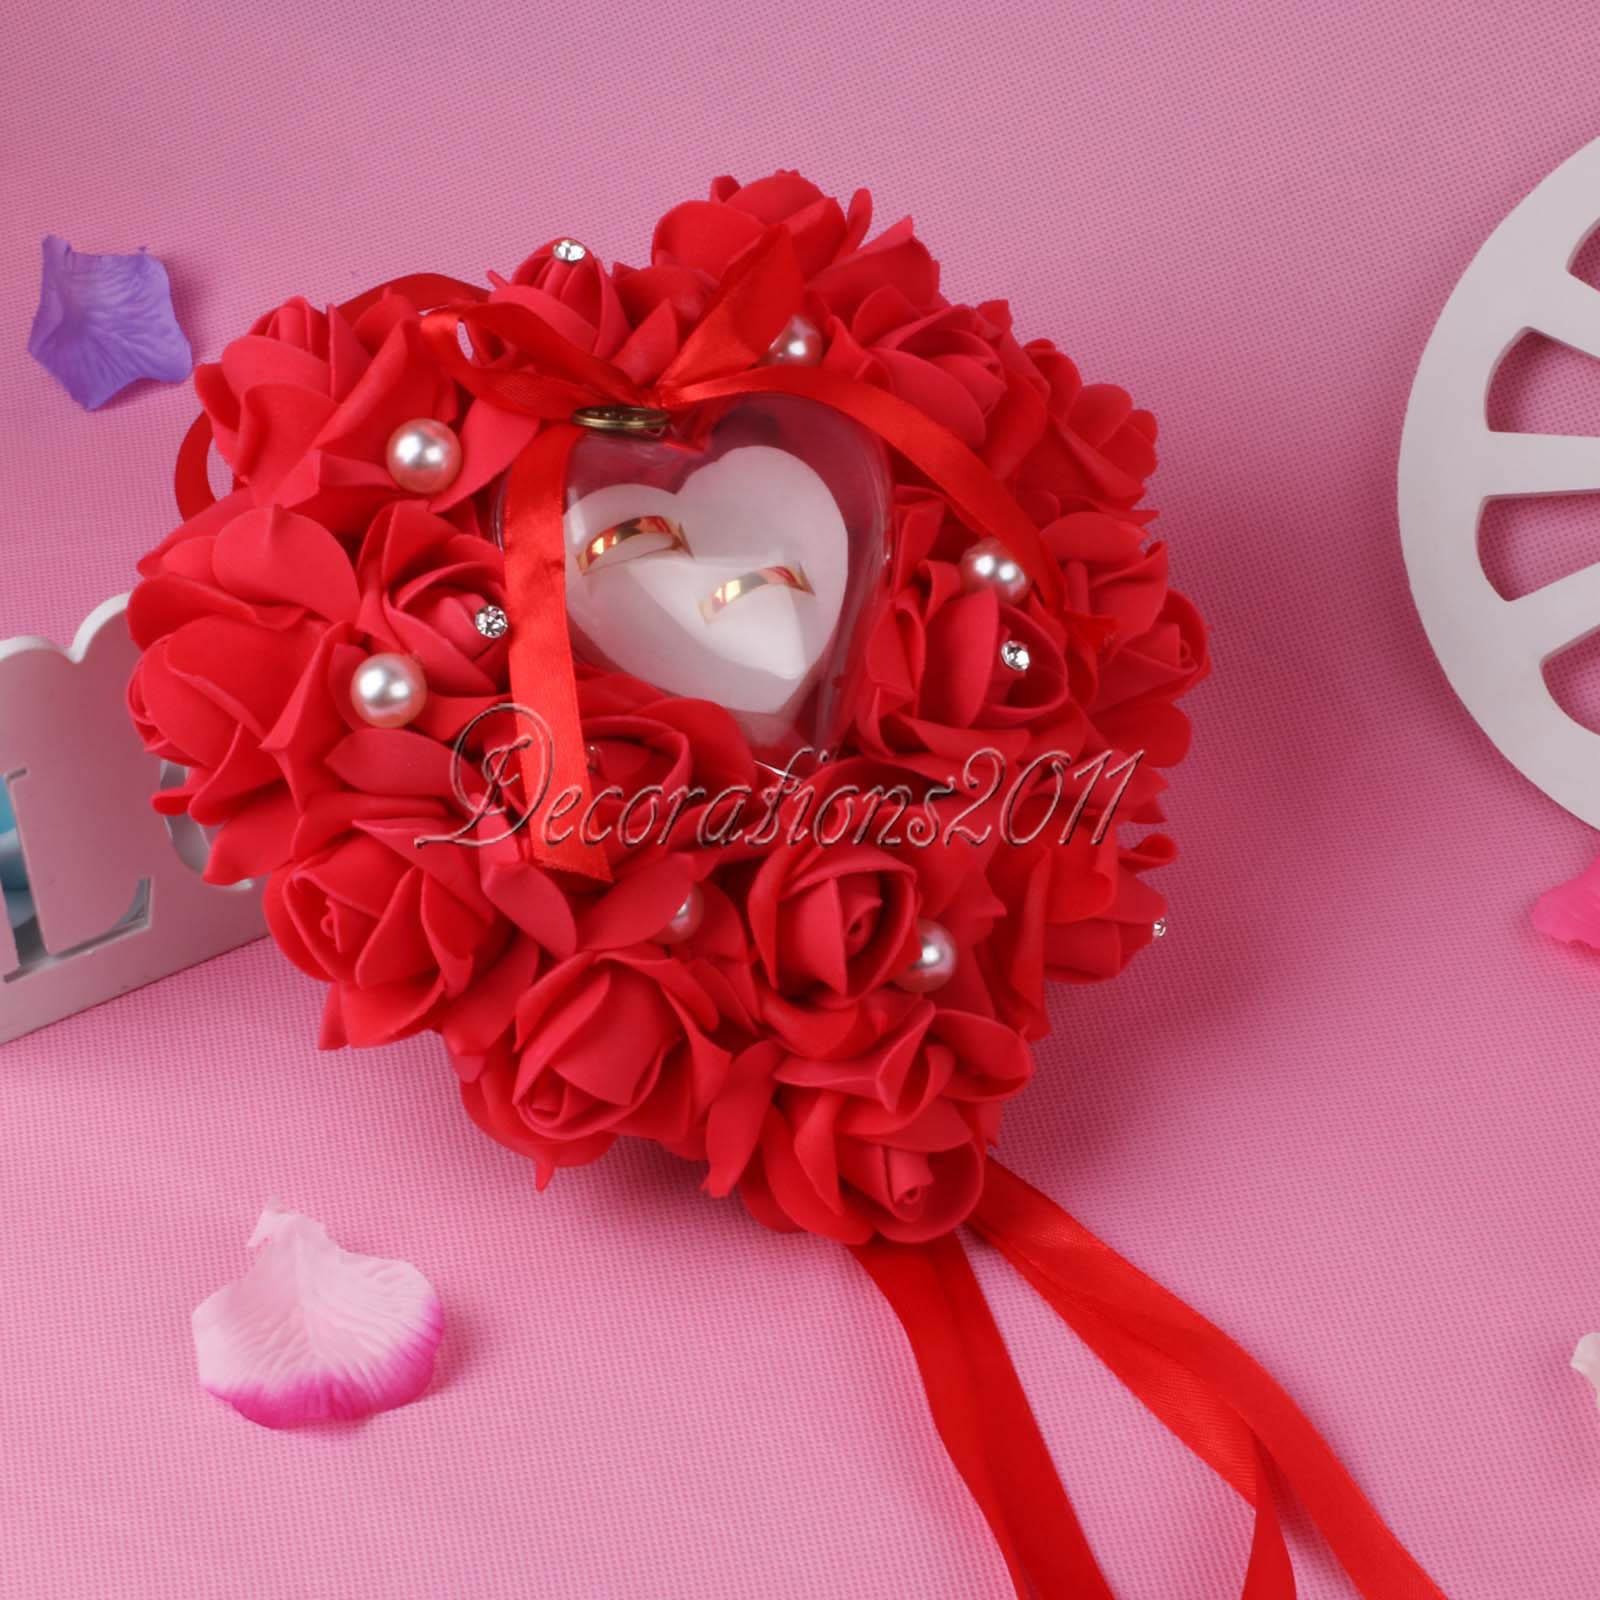 Rose Flowers Heart-shape Ring Pillow Cushion Ring Bearer Wedding ...